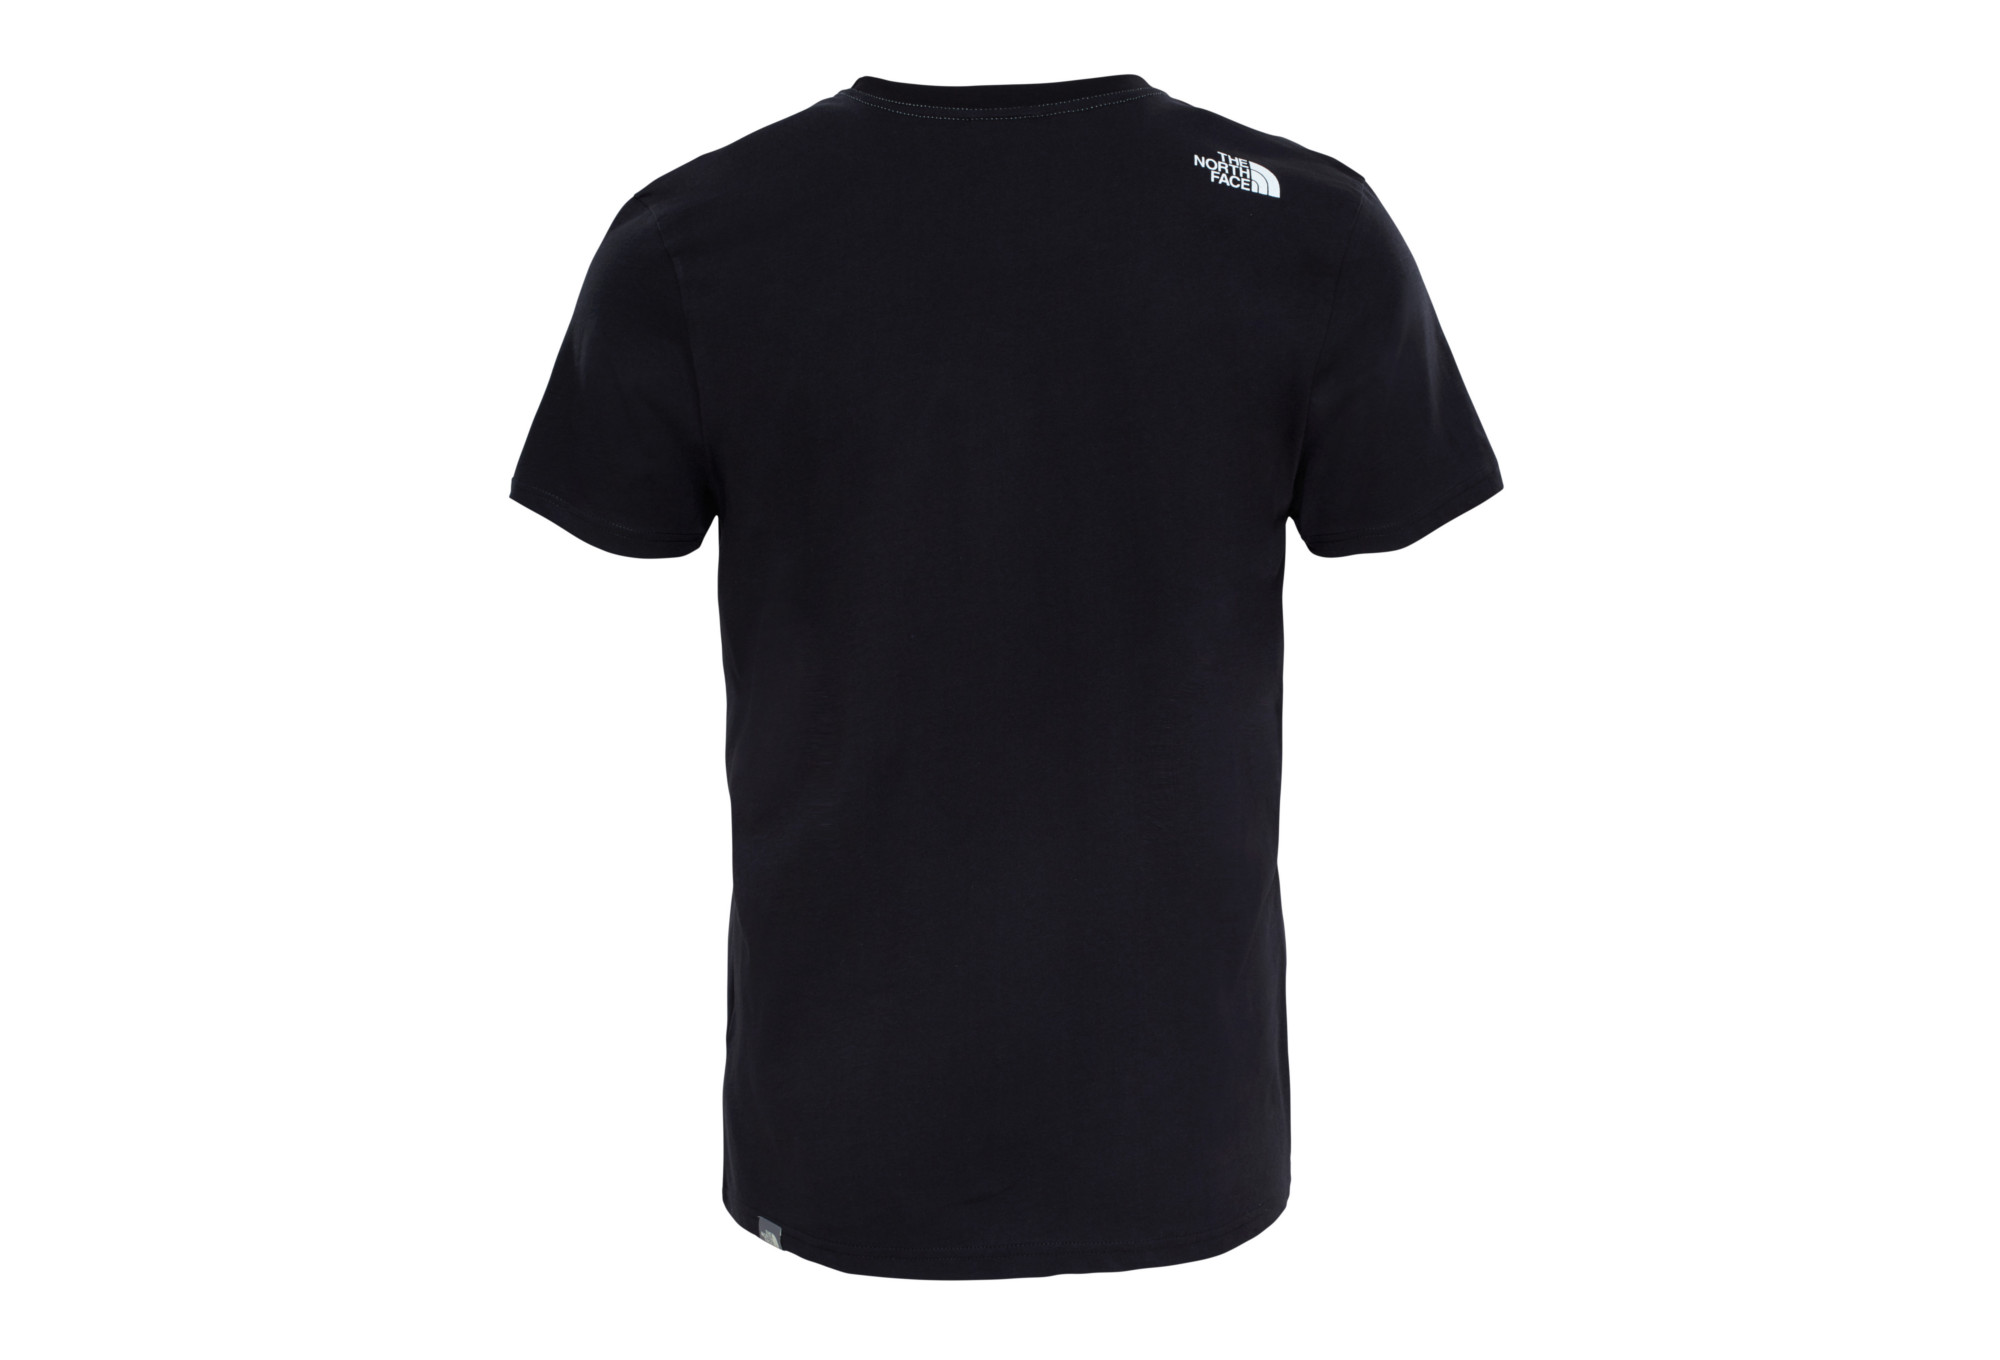 T-shirt The North Face TNF nera  0b7512a23013